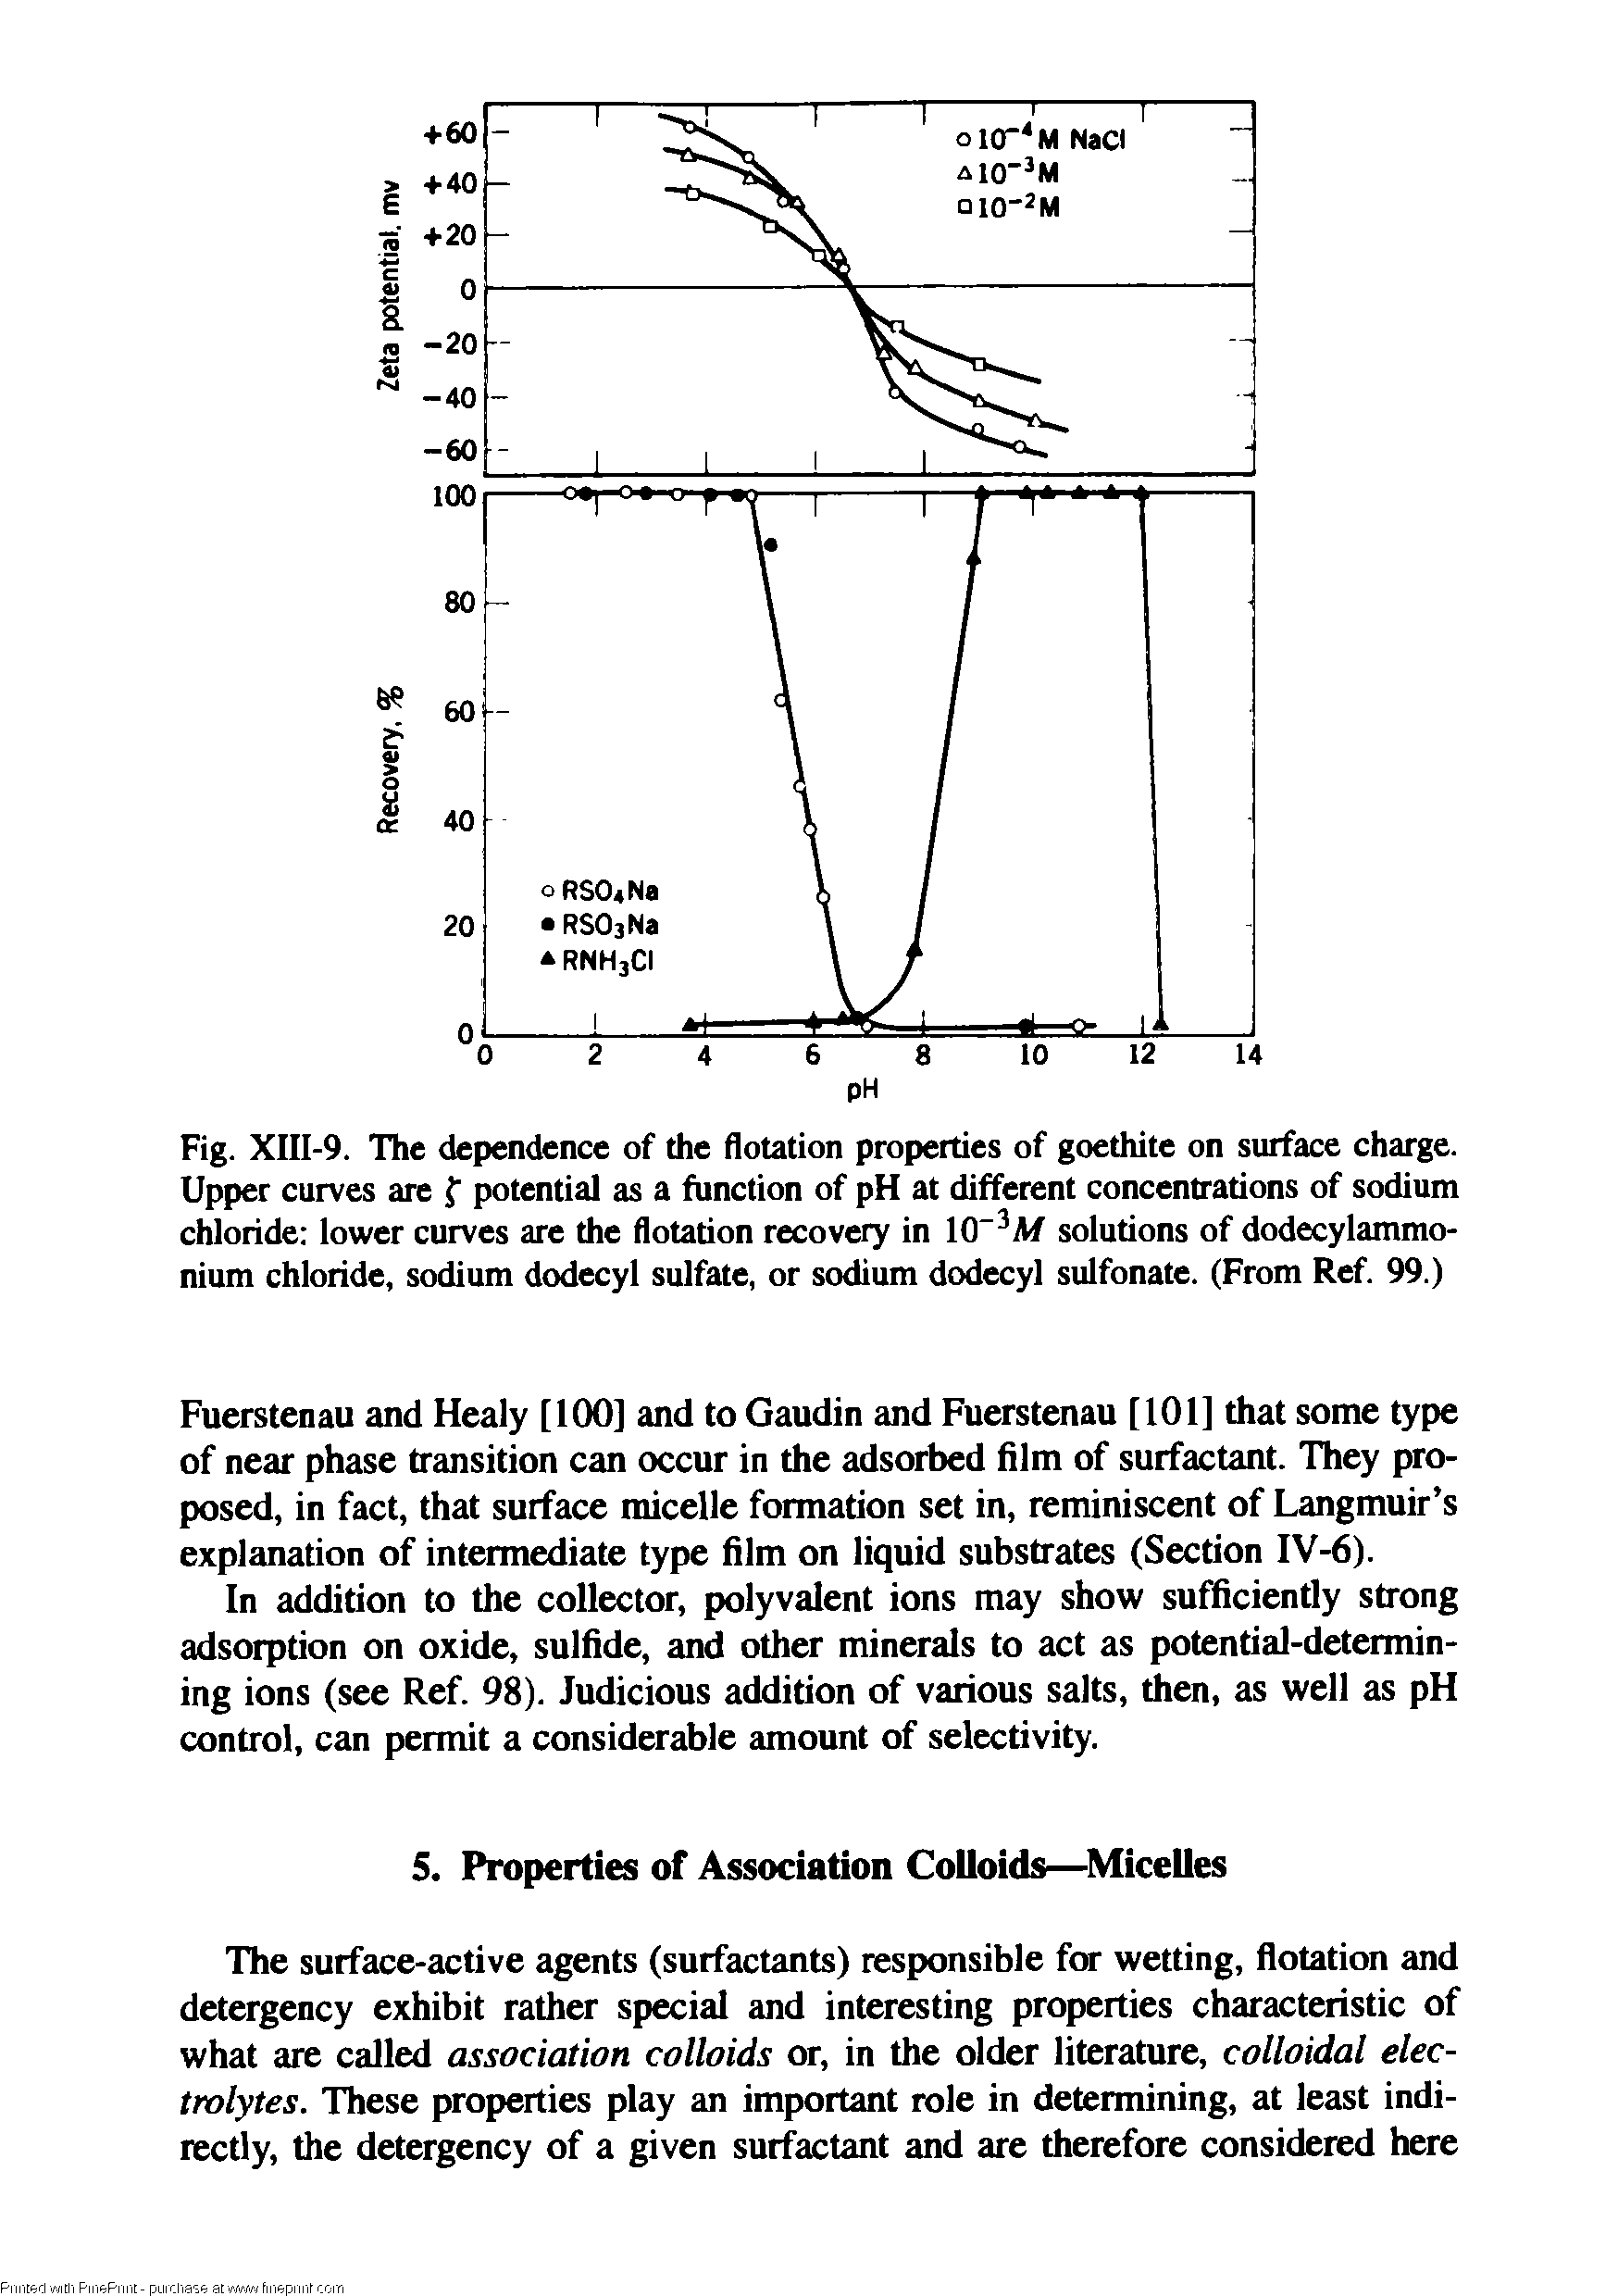 "Fig. XIII-9. The dependence of the flotation properties of goethite on <a href=""/info/surface_charging"">surface charge</a>. Upper curves are potential as a function of pH at <a href=""/info/concentration_difference"">different concentrations</a> of sodium chloride lower curves are the <a href=""/info/flotation_recovery"">flotation recovery</a> in 10 M solutions of dodecylammo-nium chloride, <a href=""/info/sodium_dodecyl_sulfate"">sodium dodecyl sulfate</a>, or <a href=""/info/sodium_dodecyl_sulfonate"">sodium dodecyl sulfonate</a>. (From Ref. 99.)"